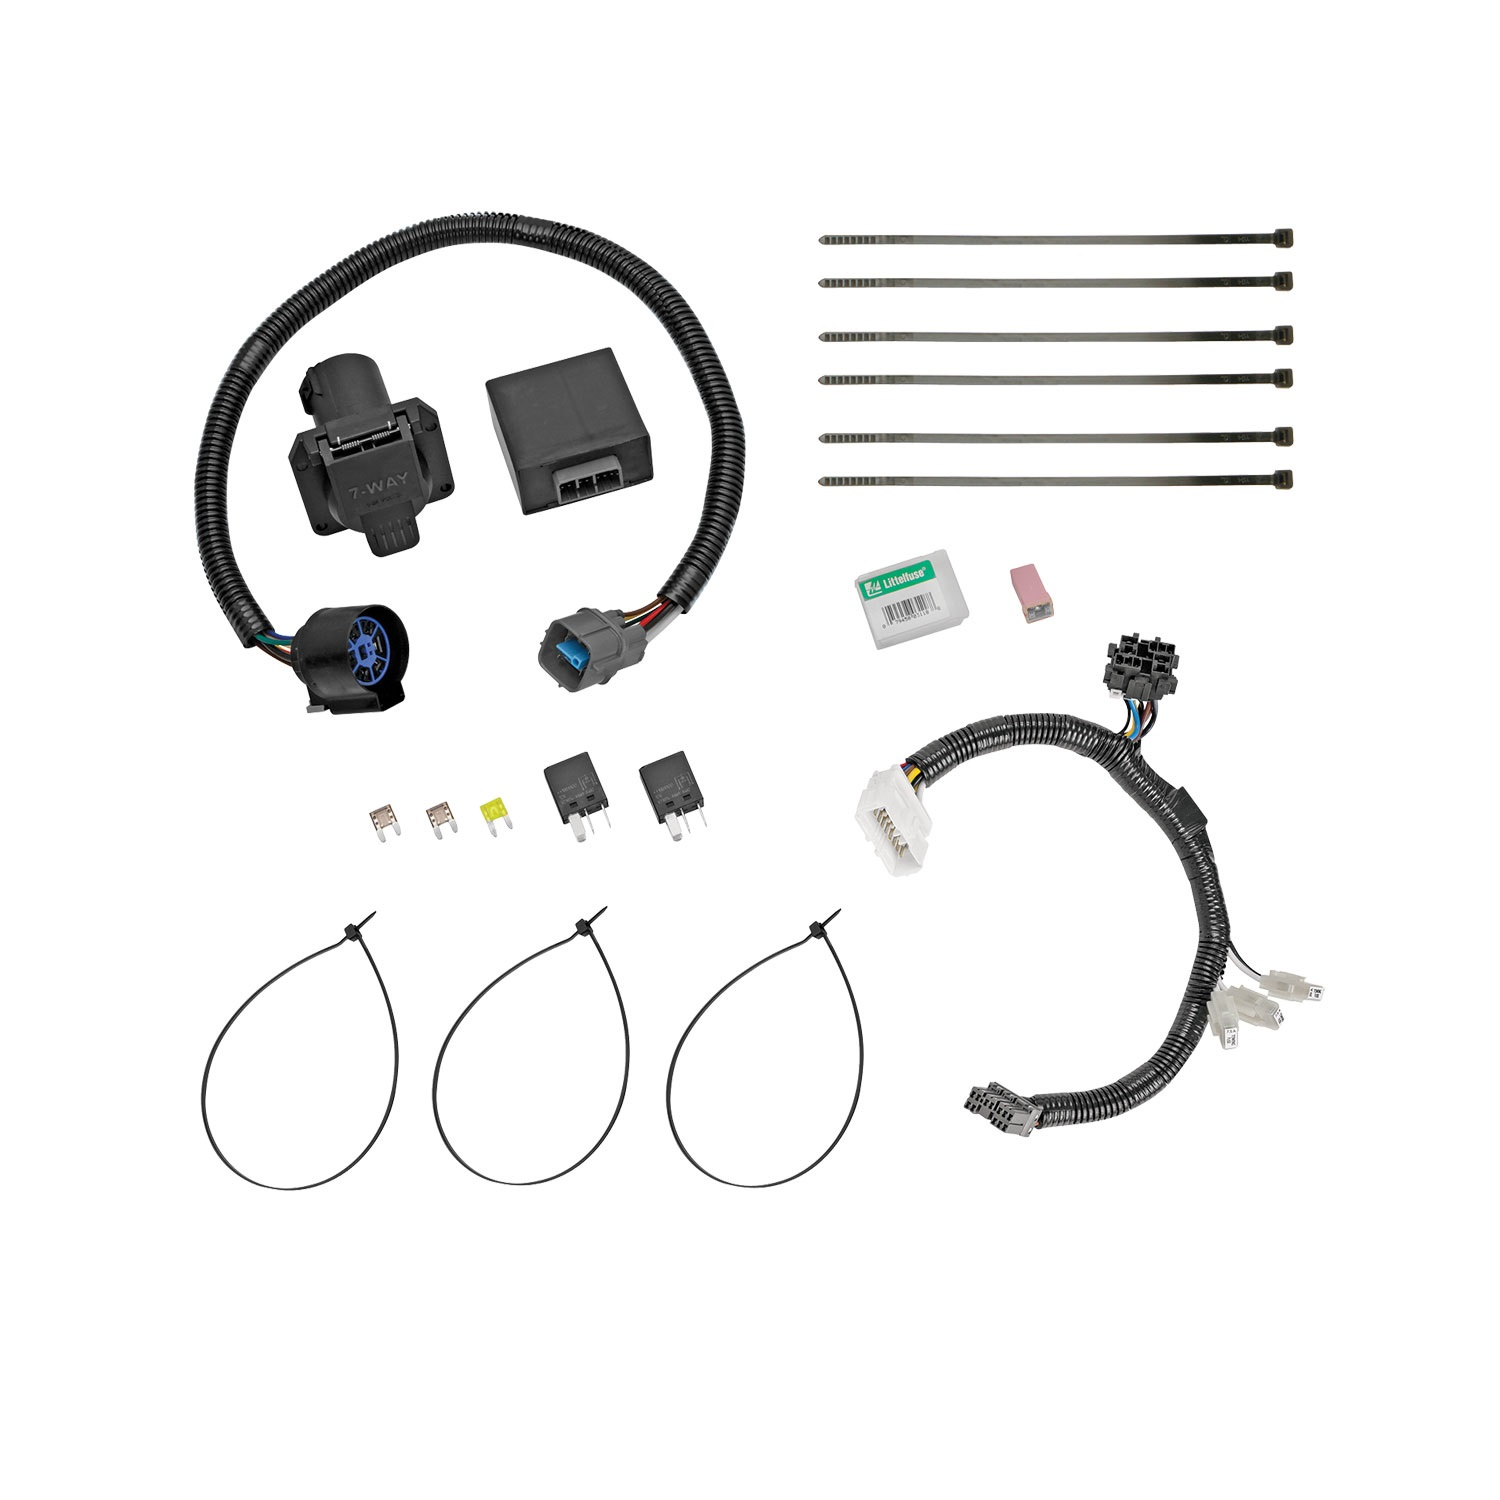 hight resolution of ford replacement oem tow package wiring harness 7 way schematic ford replacement oem tow package wiring harness 7way